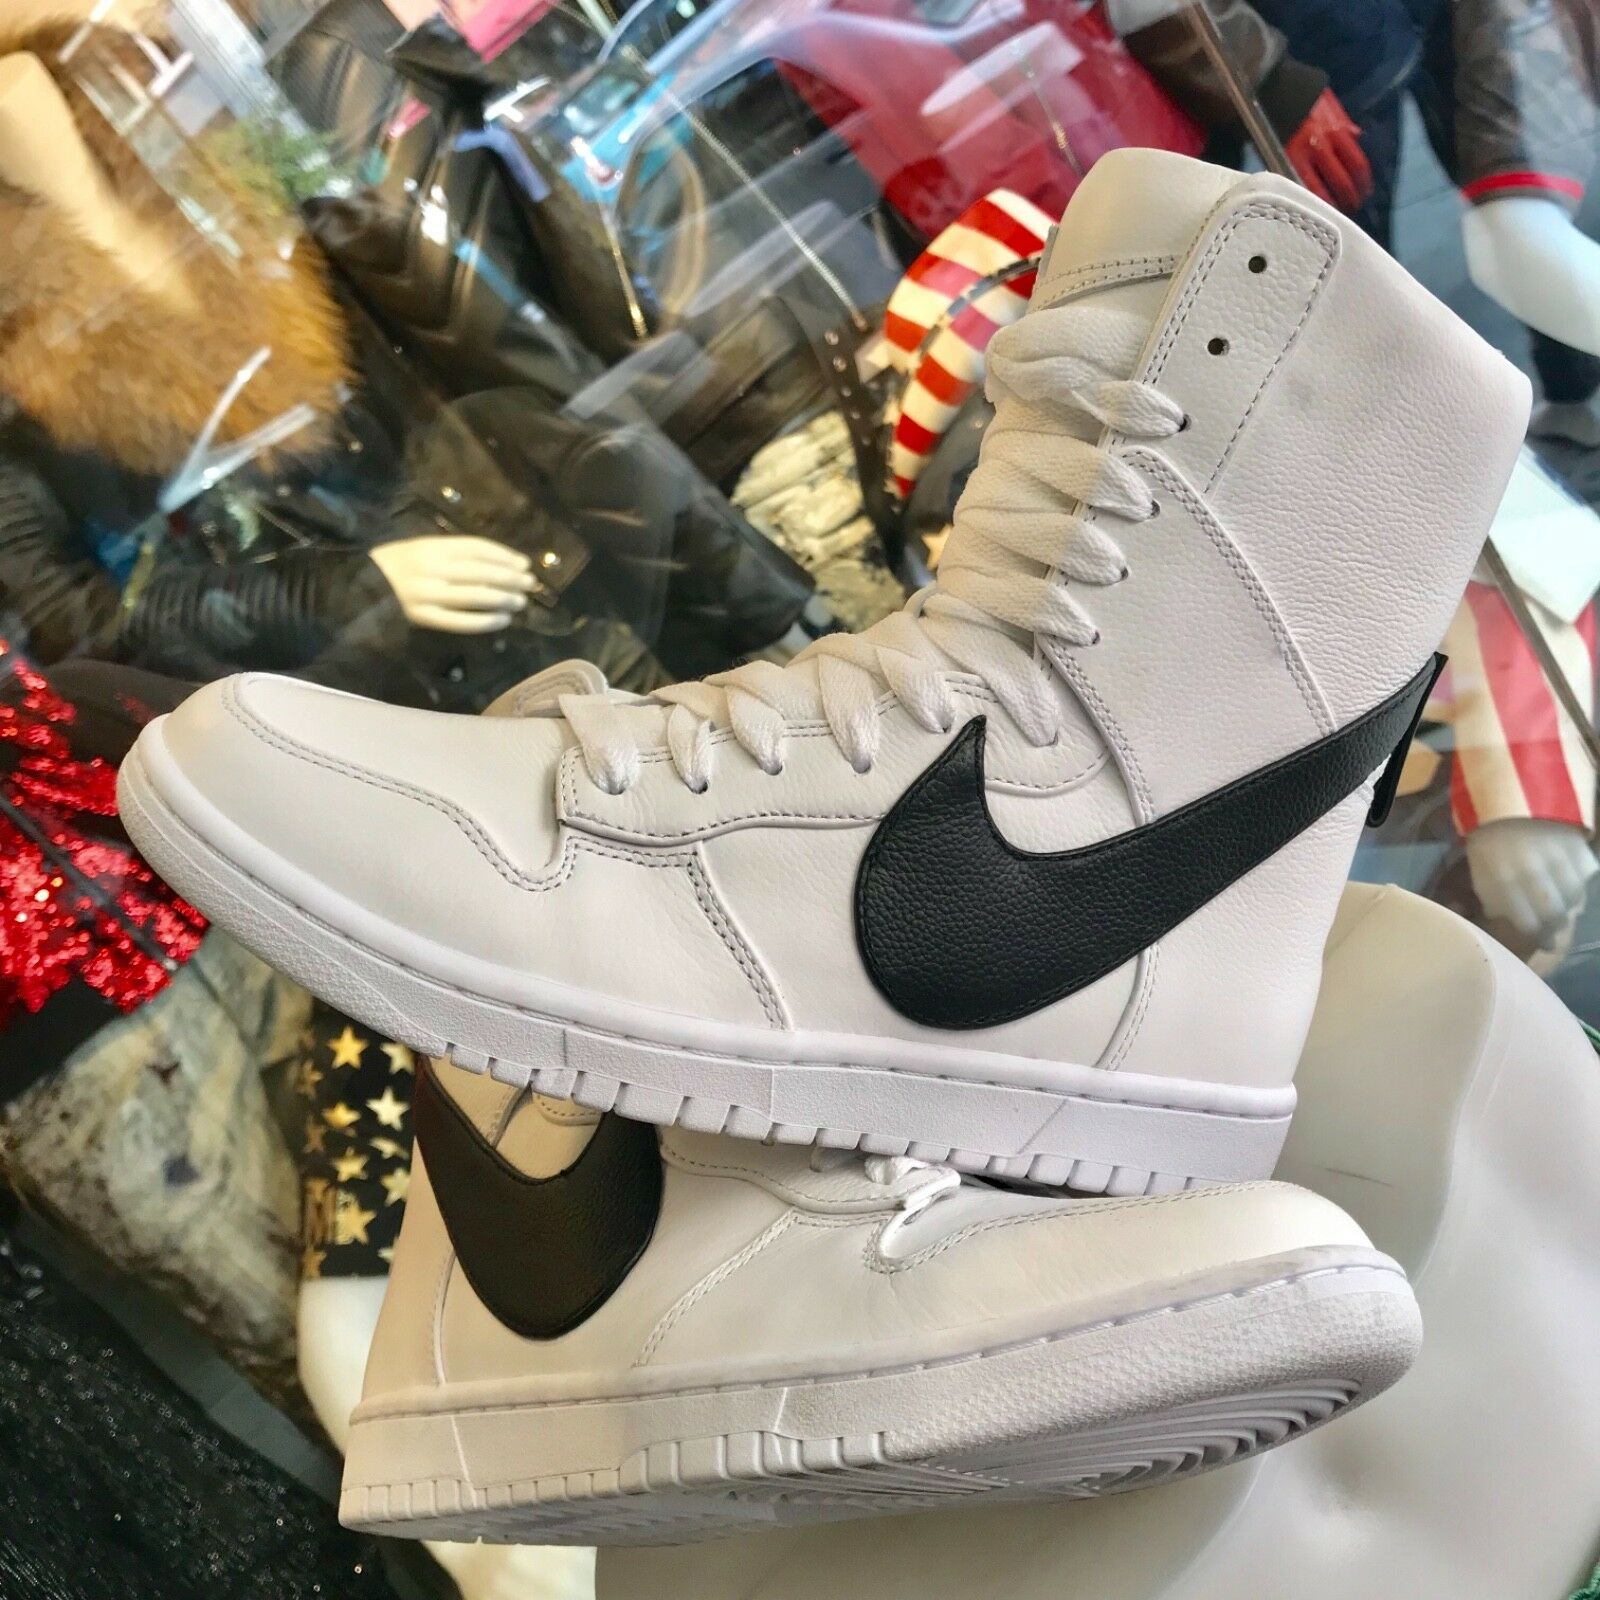 8286a3c88 Mr Ms Men s Men s Men s Nike White Black Men s Fashion Sneakers High  quality and